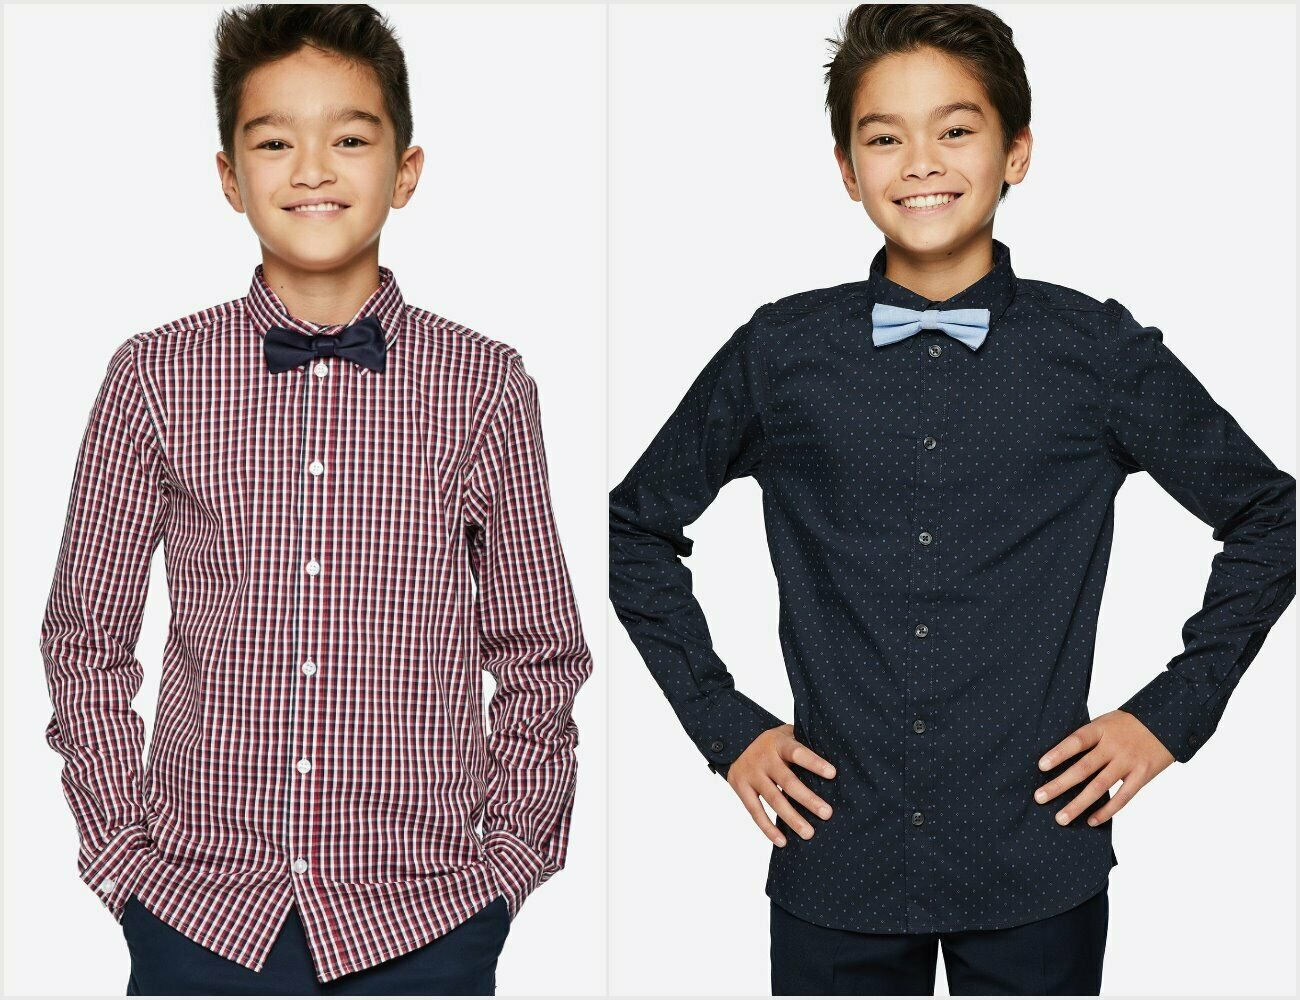 NWT European Cubus Boys Long Sleeve Button Up Shirt with Bow Tie Blue Red